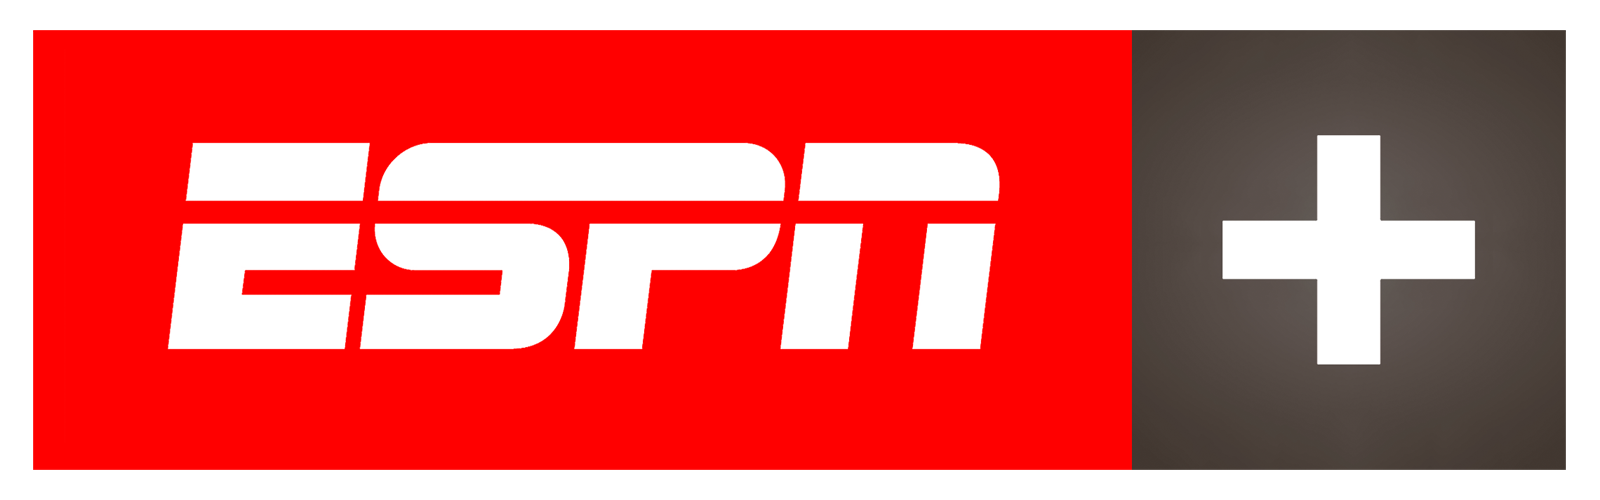 Will You Pay $5 Per Month for the ESPN Plus Streaming Service?.